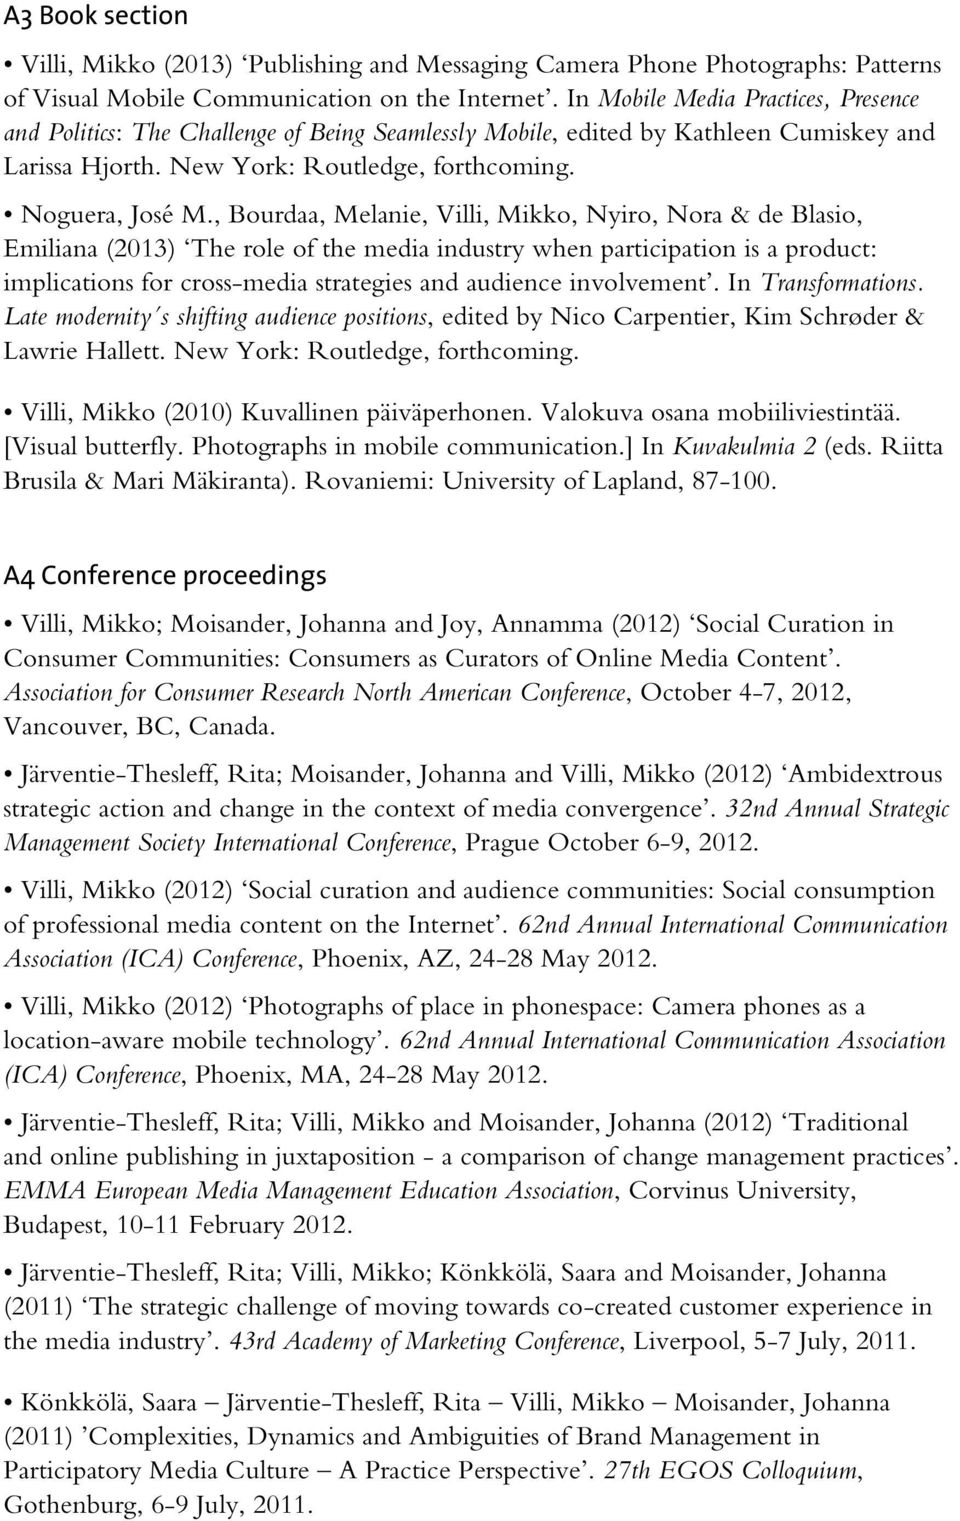 , Bourdaa, Melanie, Villi, Mikko, Nyiro, Nora & de Blasio, Emiliana (2013) The role of the media industry when participation is a product: implications for cross-media strategies and audience